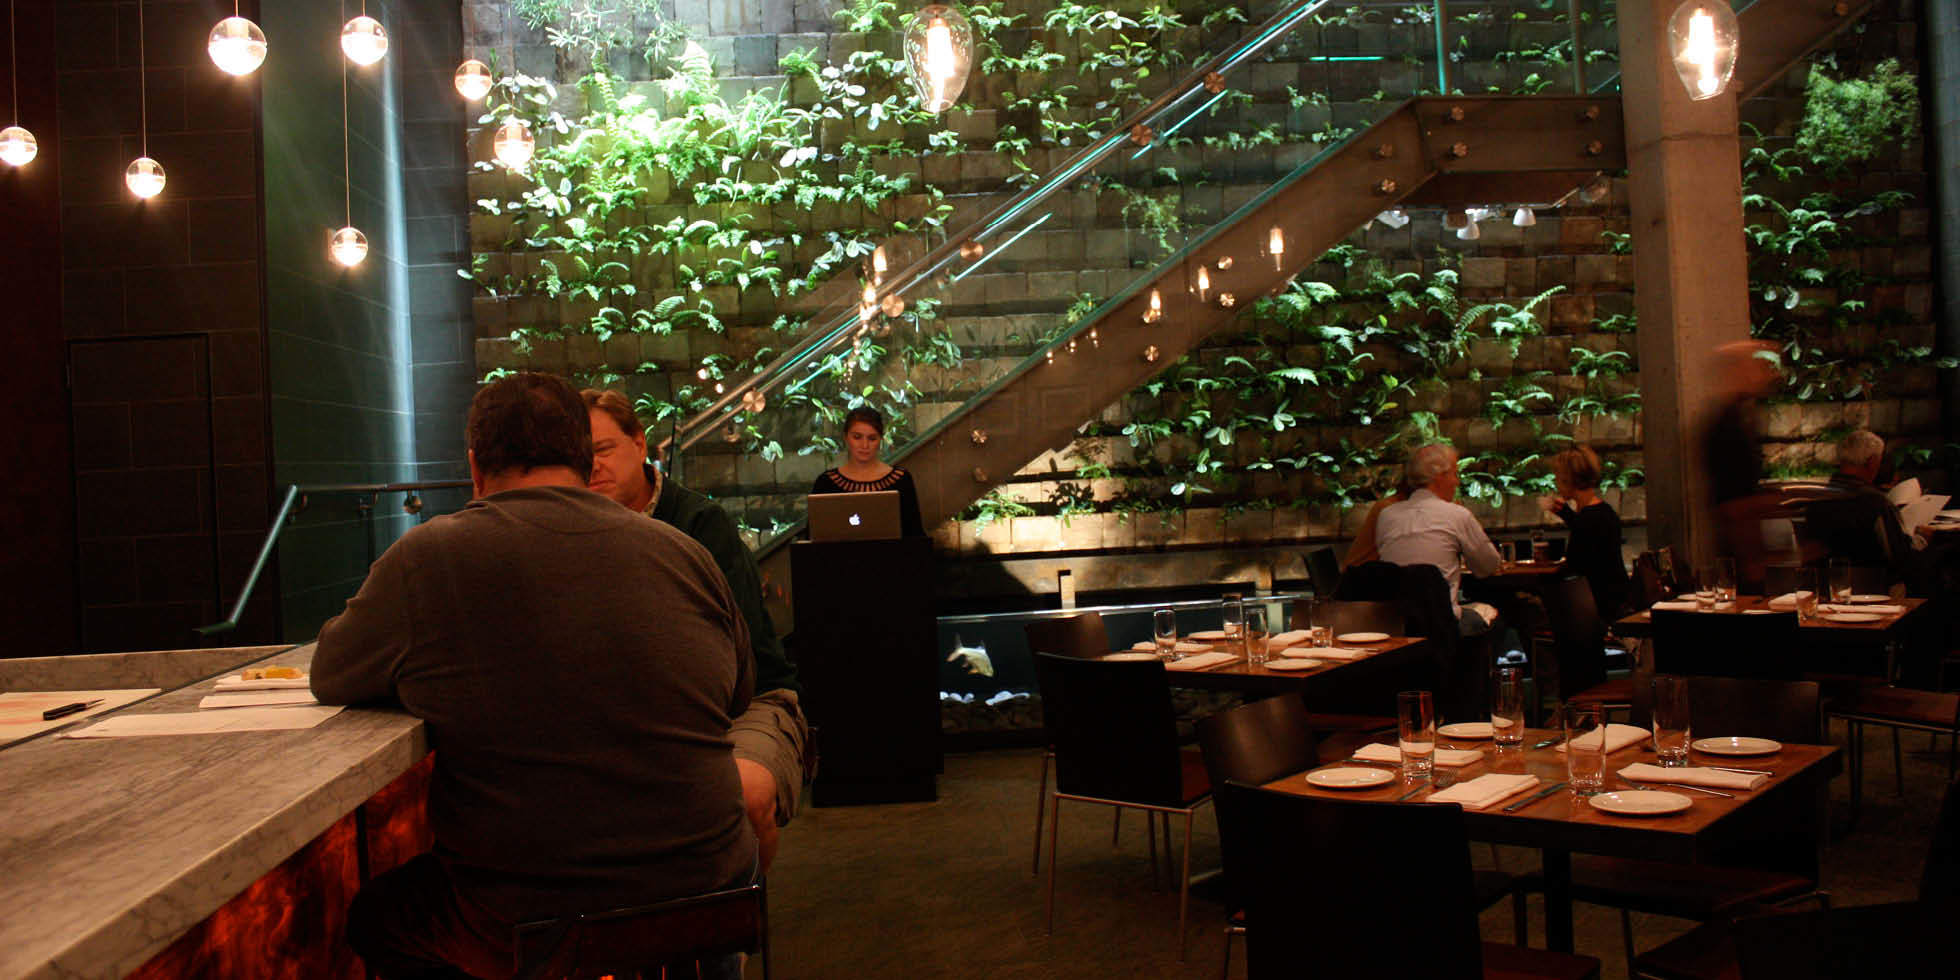 The Moss Room Restaurant Living Wall by Habitat Horticulture - View 4